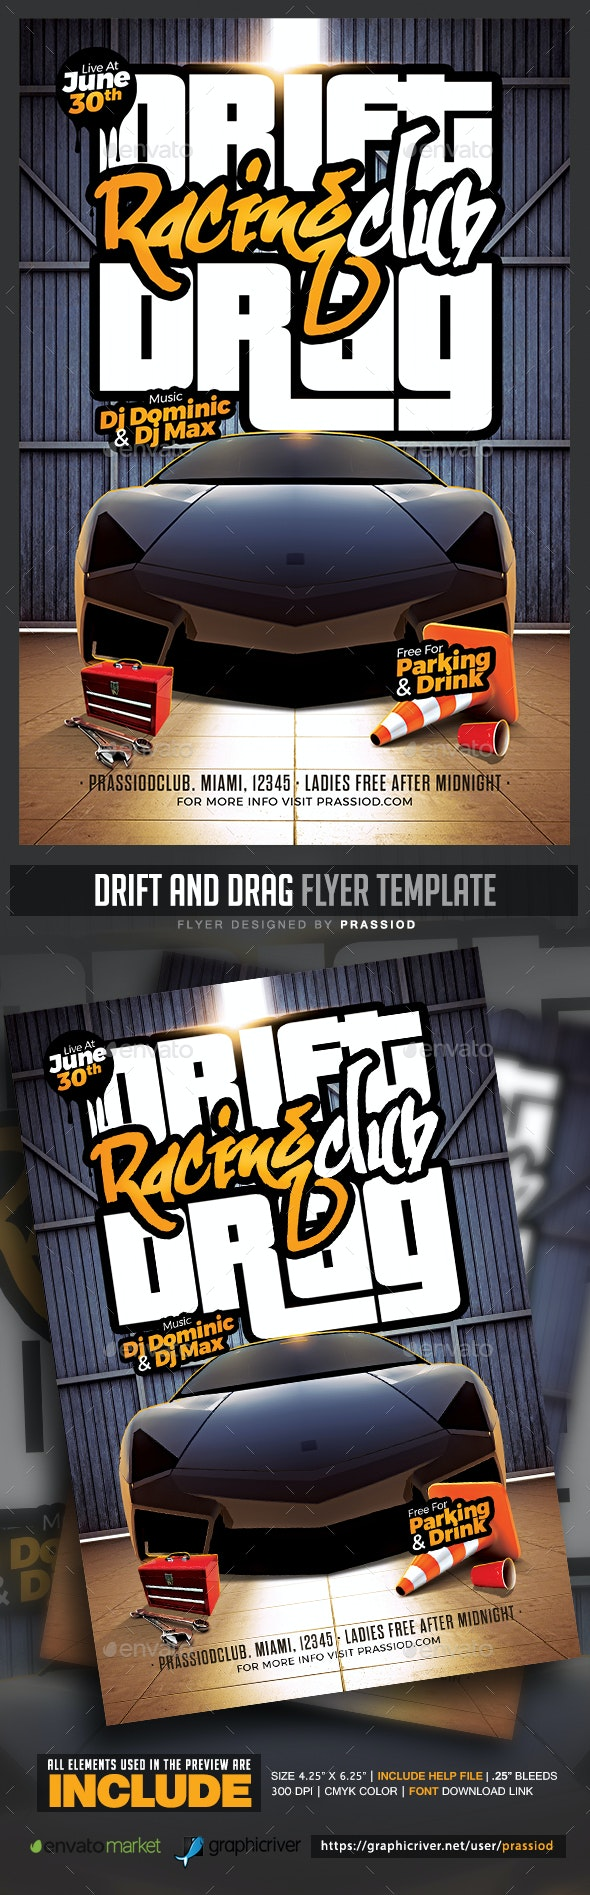 Drift And Drag Flyer Template - Miscellaneous Events